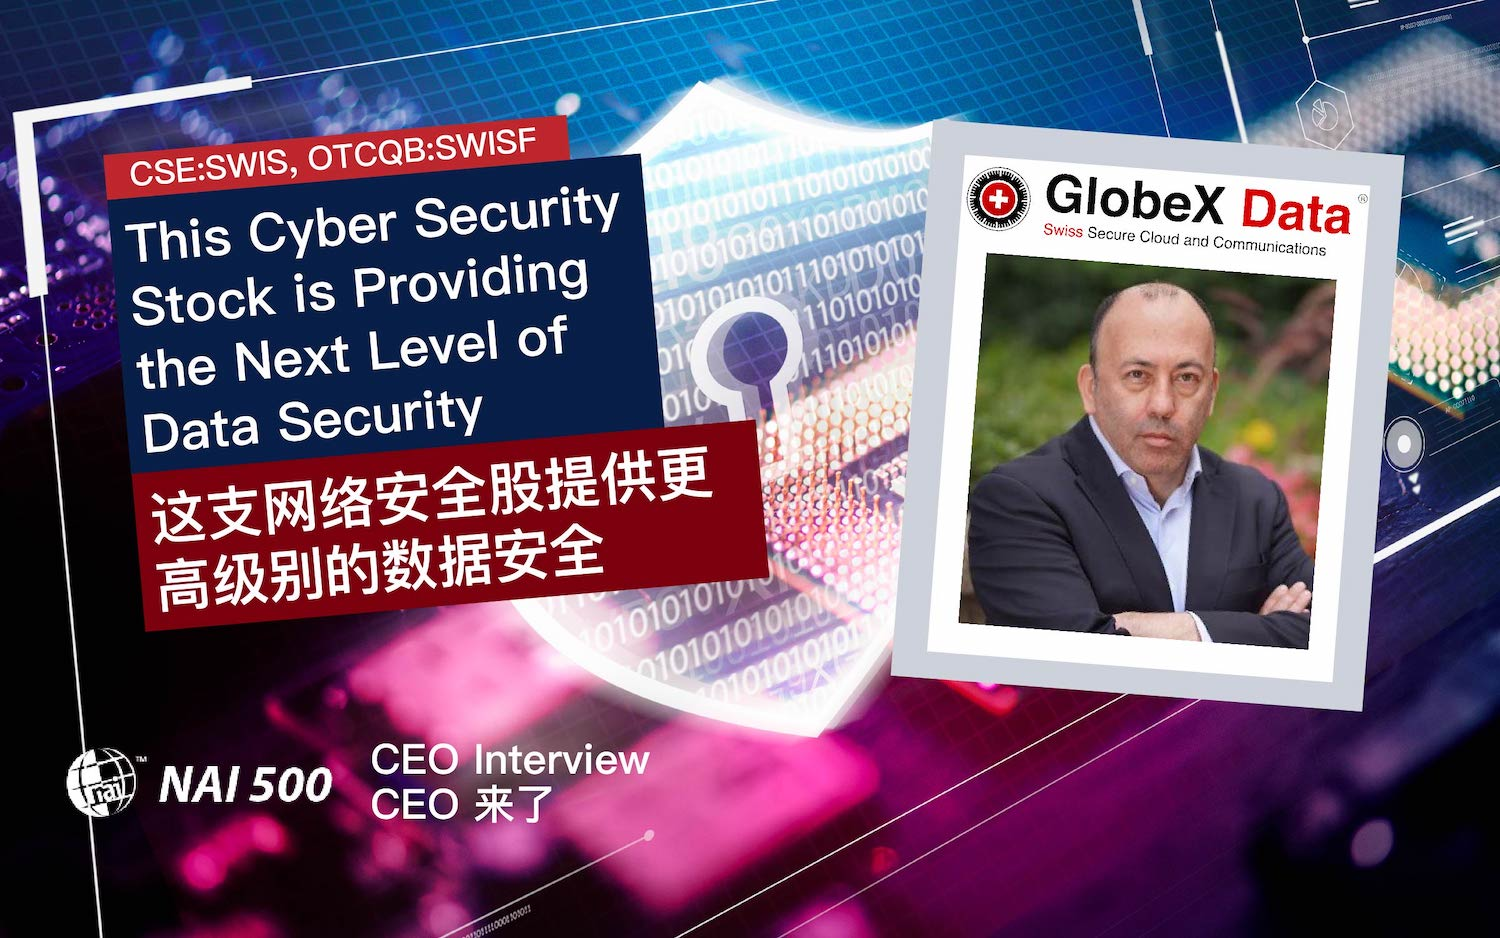 GlobeX Data Cyber Security Stock 网络安全股